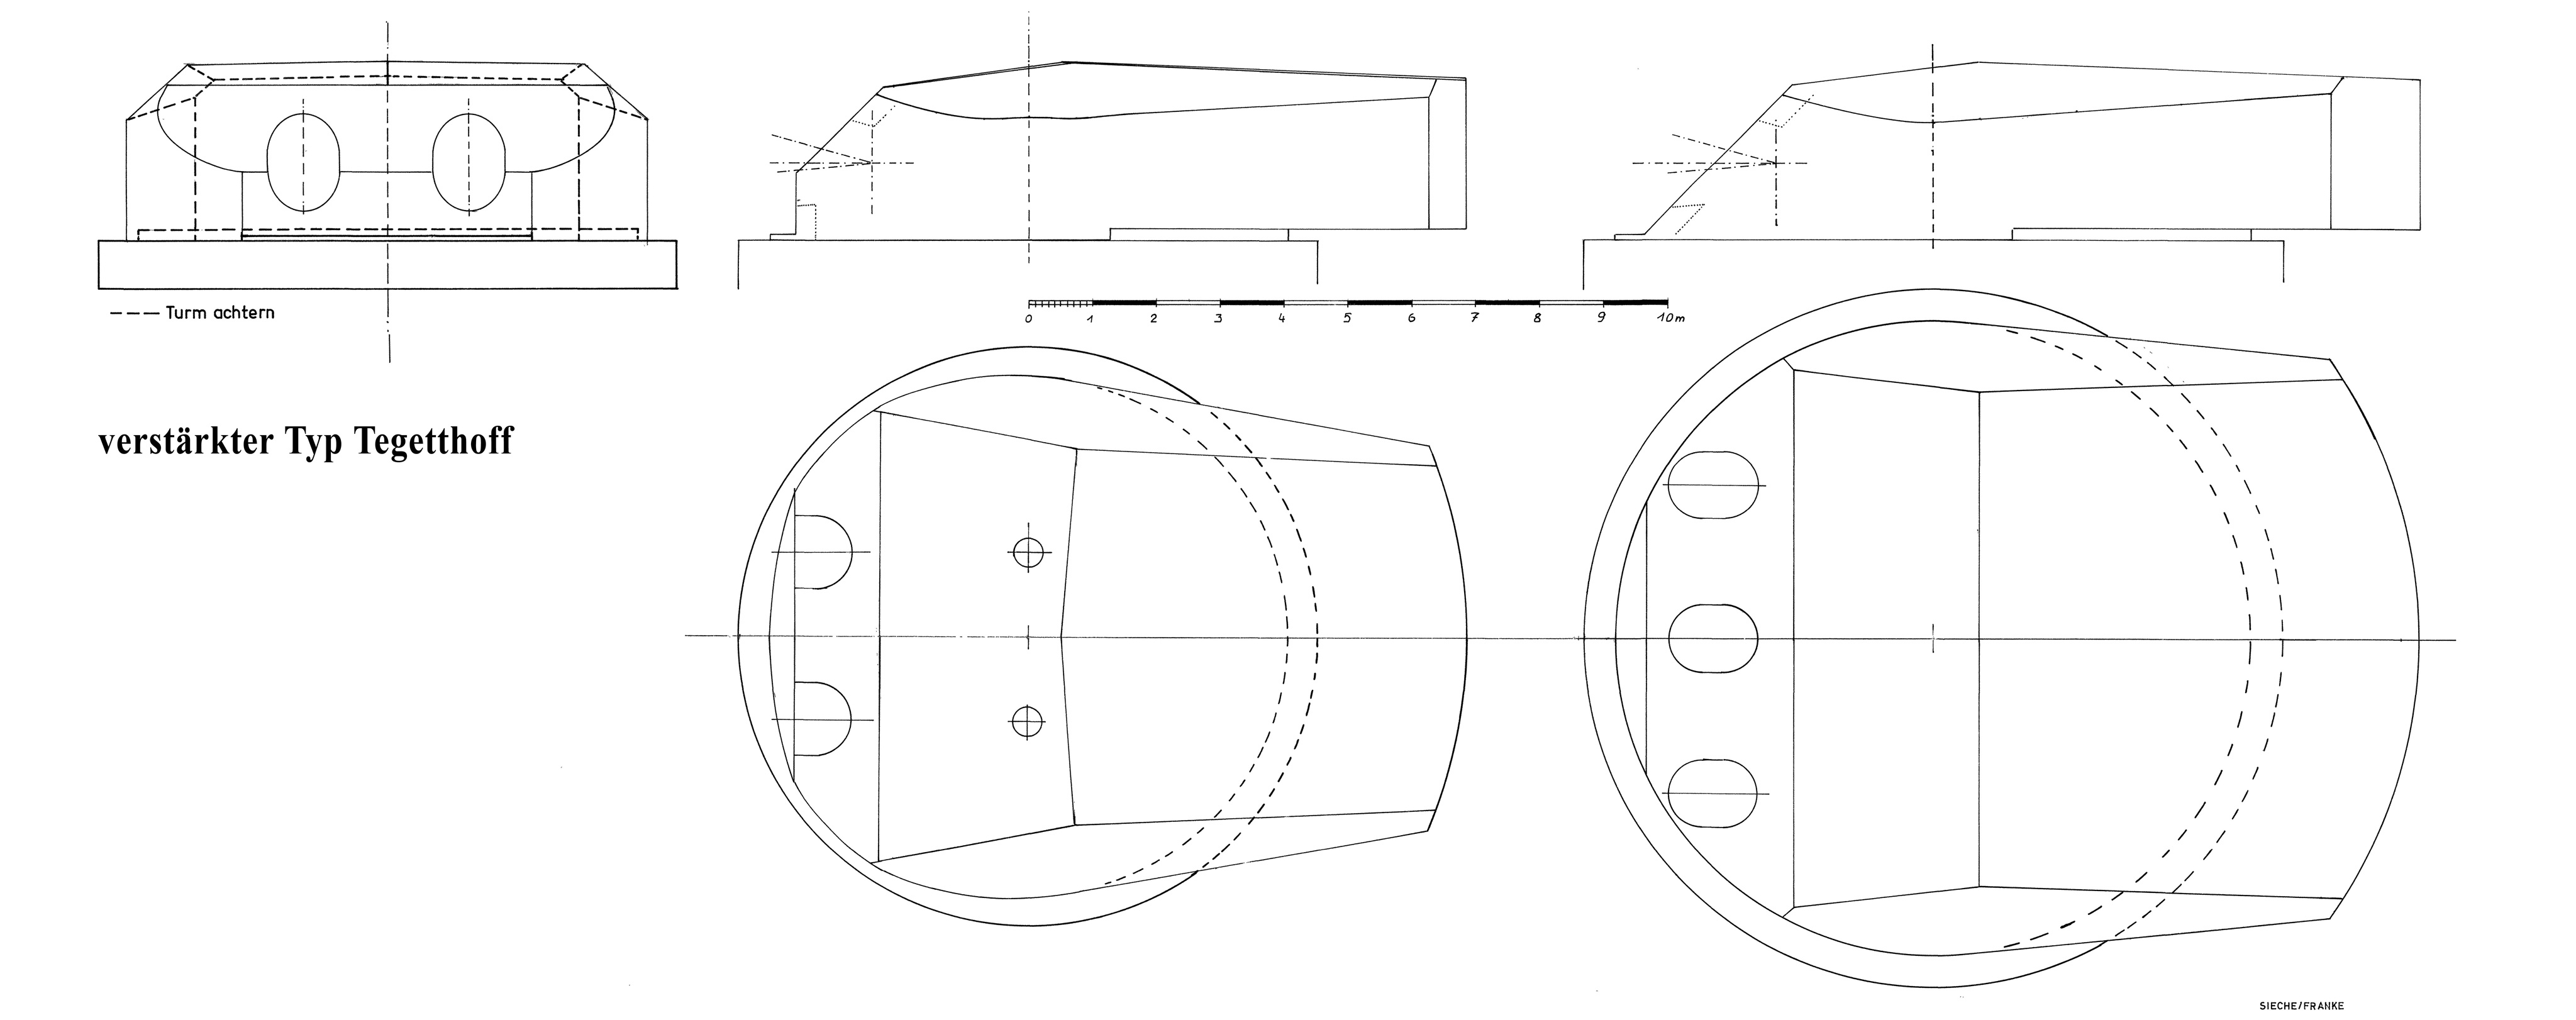 https://0901.nccdn.net/4_2/000/000/001/e15/09_turret-plans-4096x1622.jpg